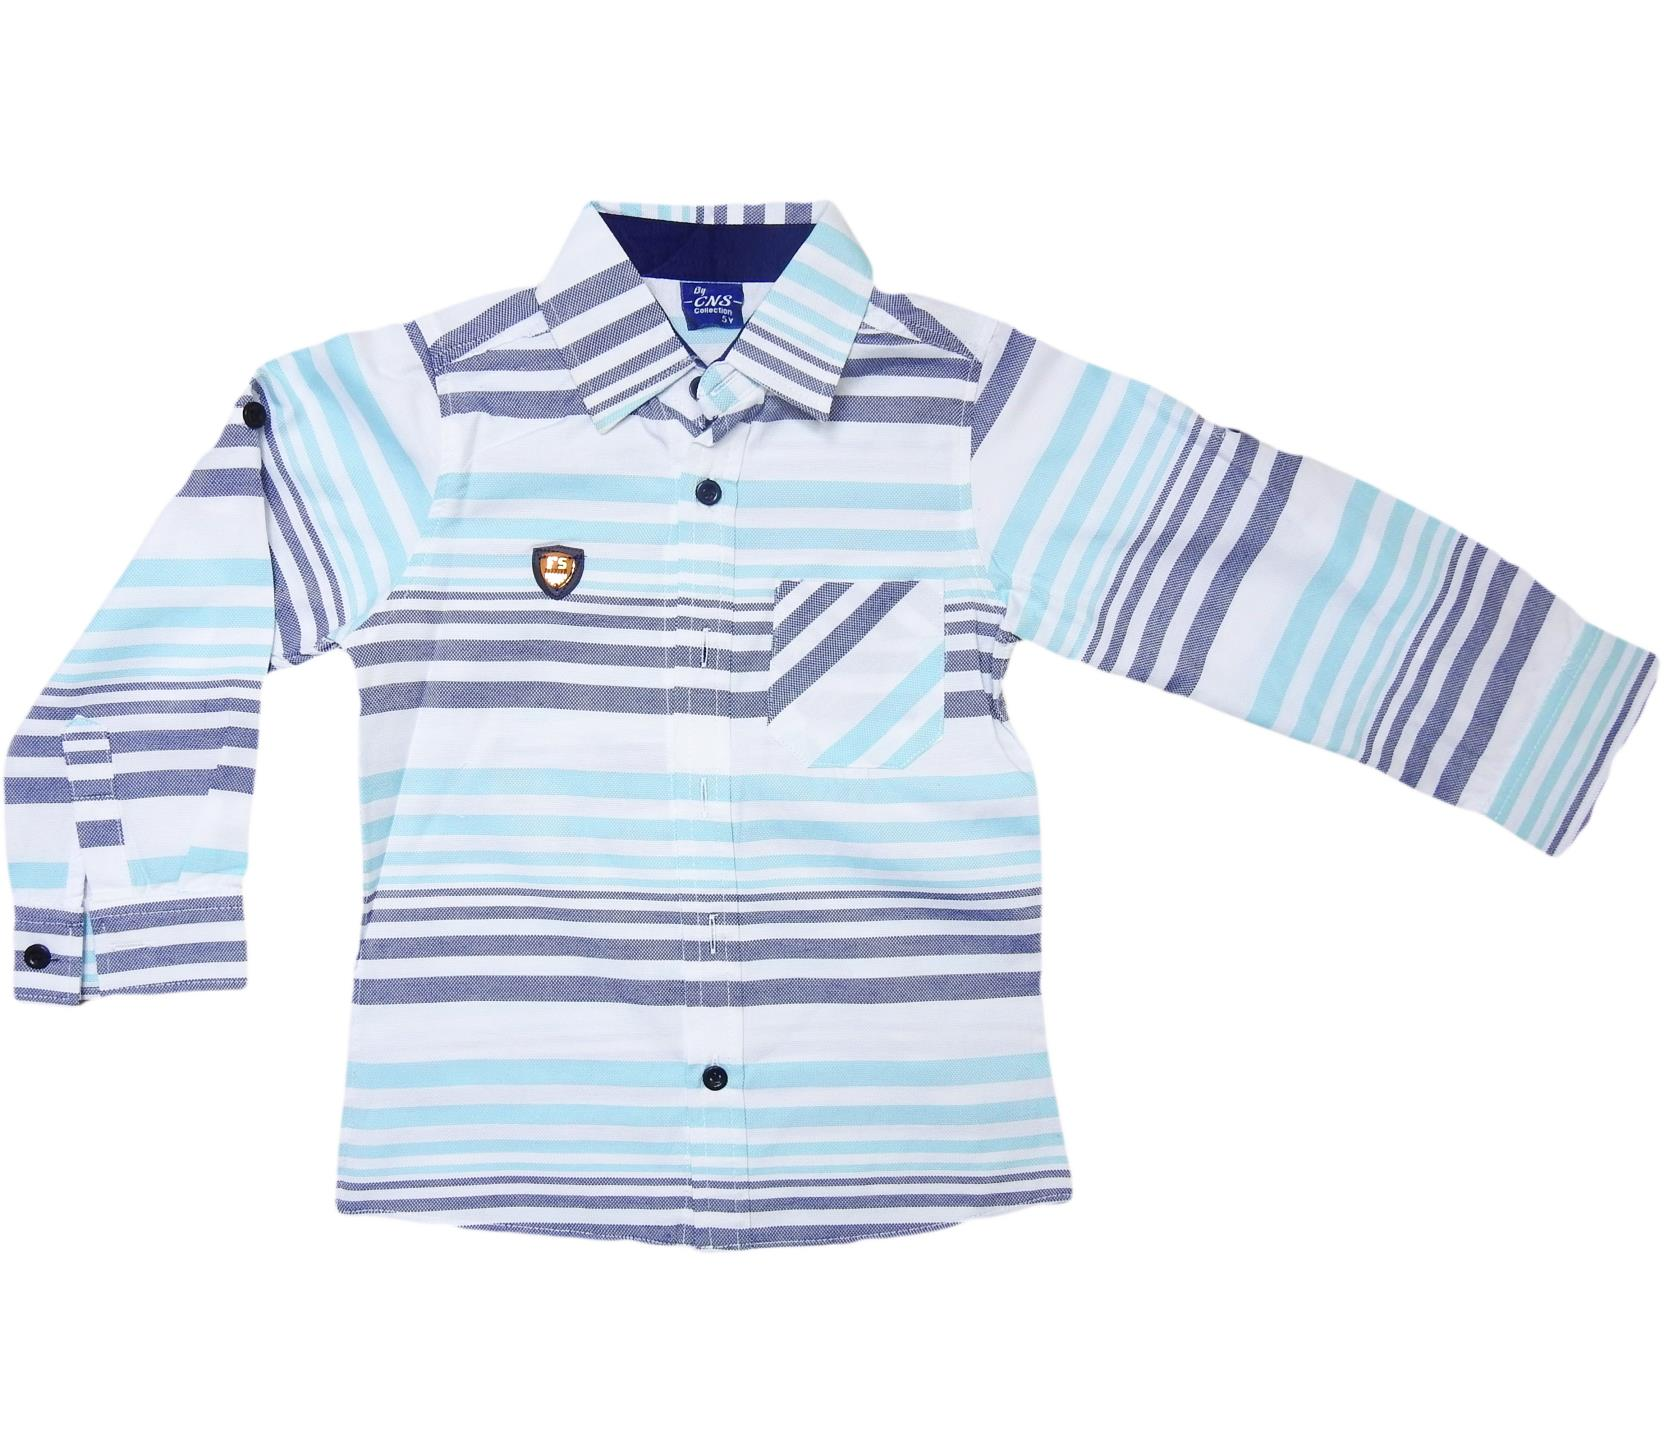 860 wholesale children's shirt with long sleeves, for boy kids 9-10-11-12 age